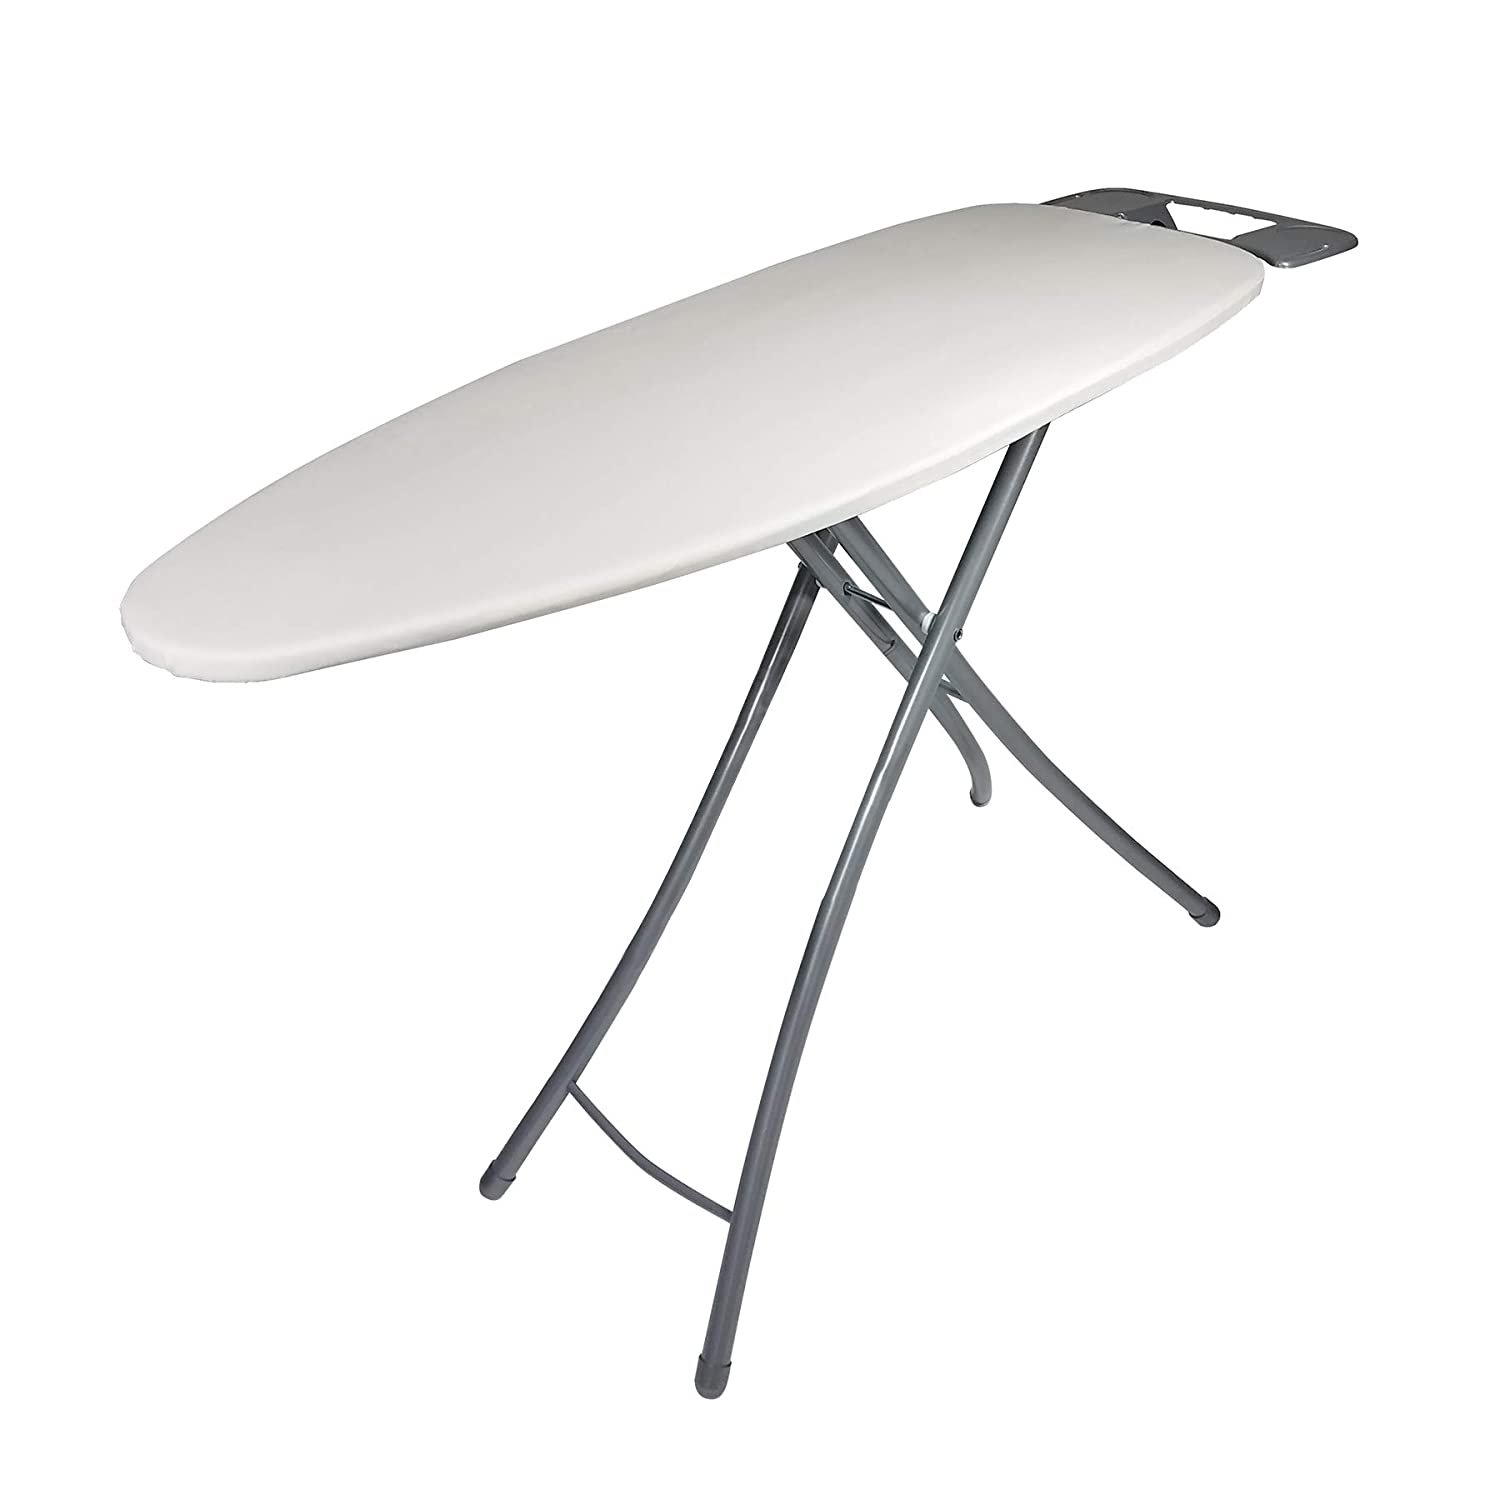 Wide-Top Ironing Board 4-leg design 100% cotton cover Garment hanger, Cream by HOMZ [並行輸入品] B06ZYJD98N